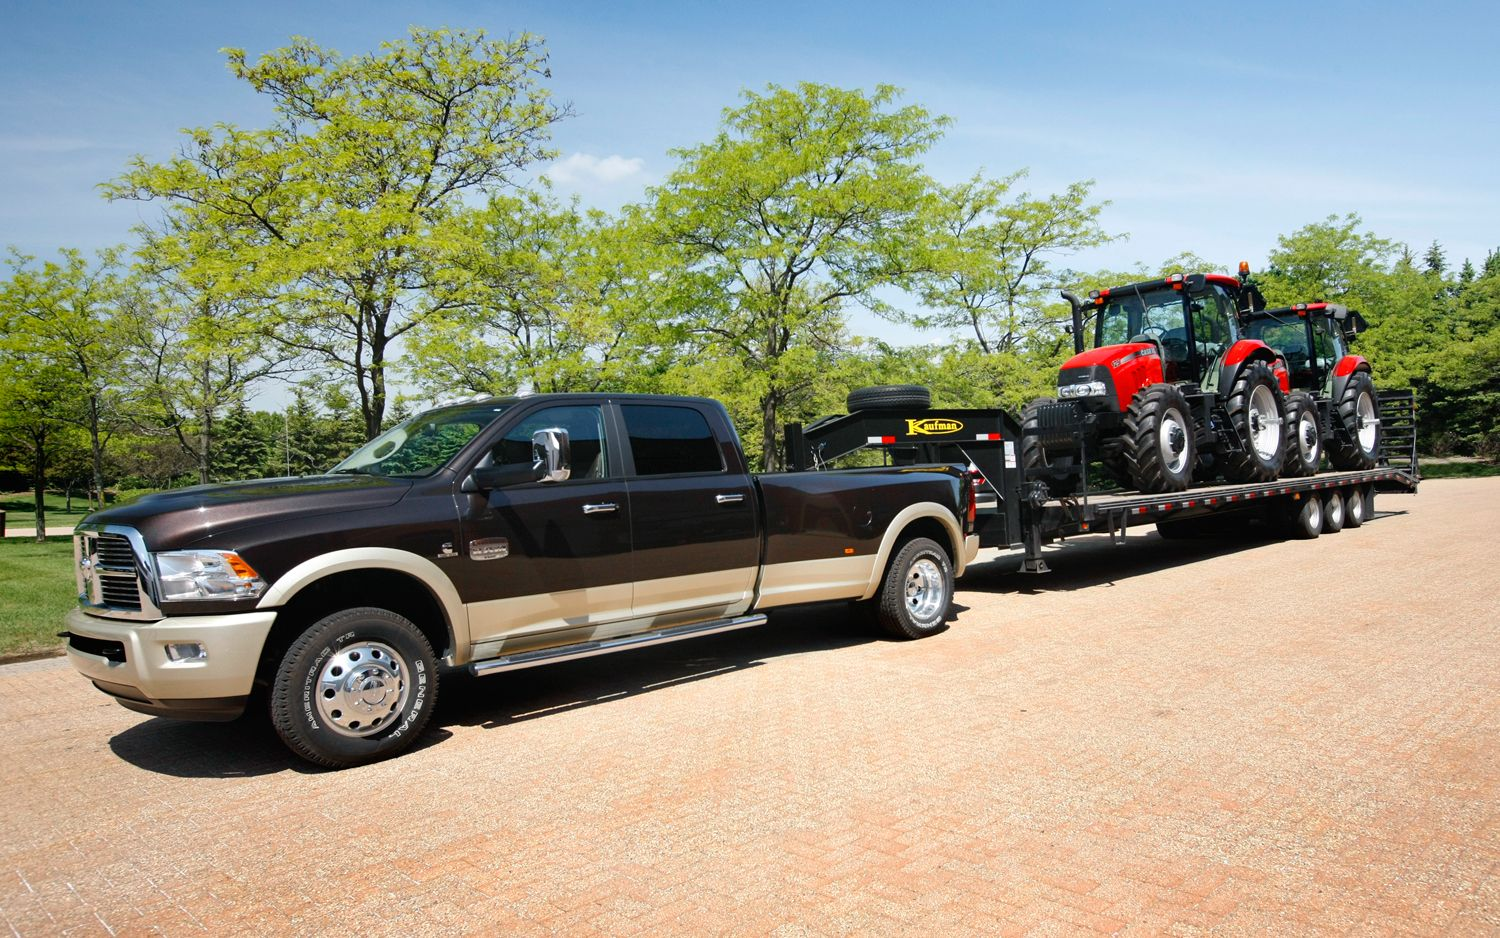 2013-ram-3500-heavy-duty-towing.jpg